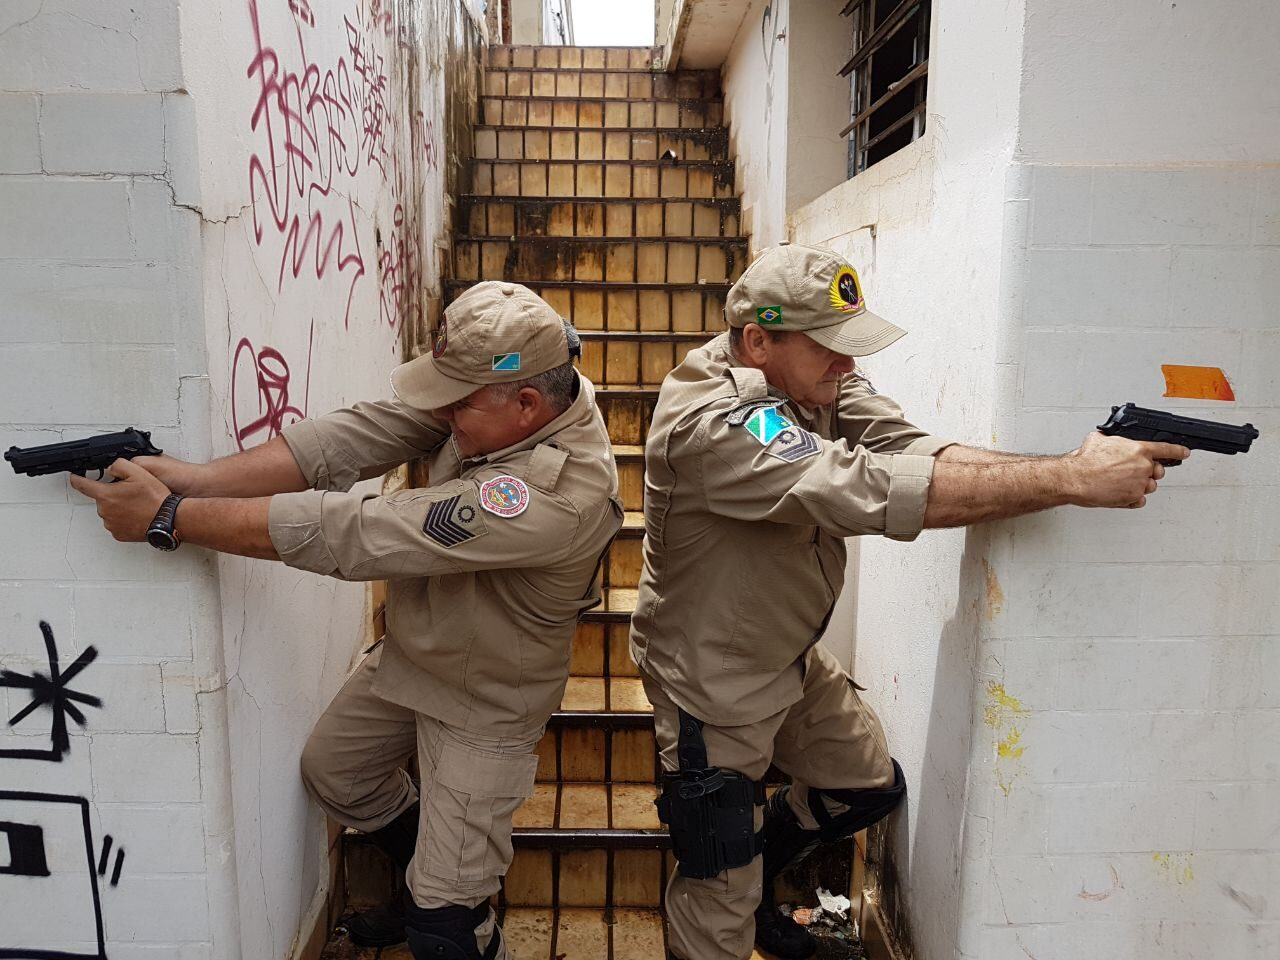 Brazilian Military Firefighters during tactical training with pistols   Military Firefighters Corps